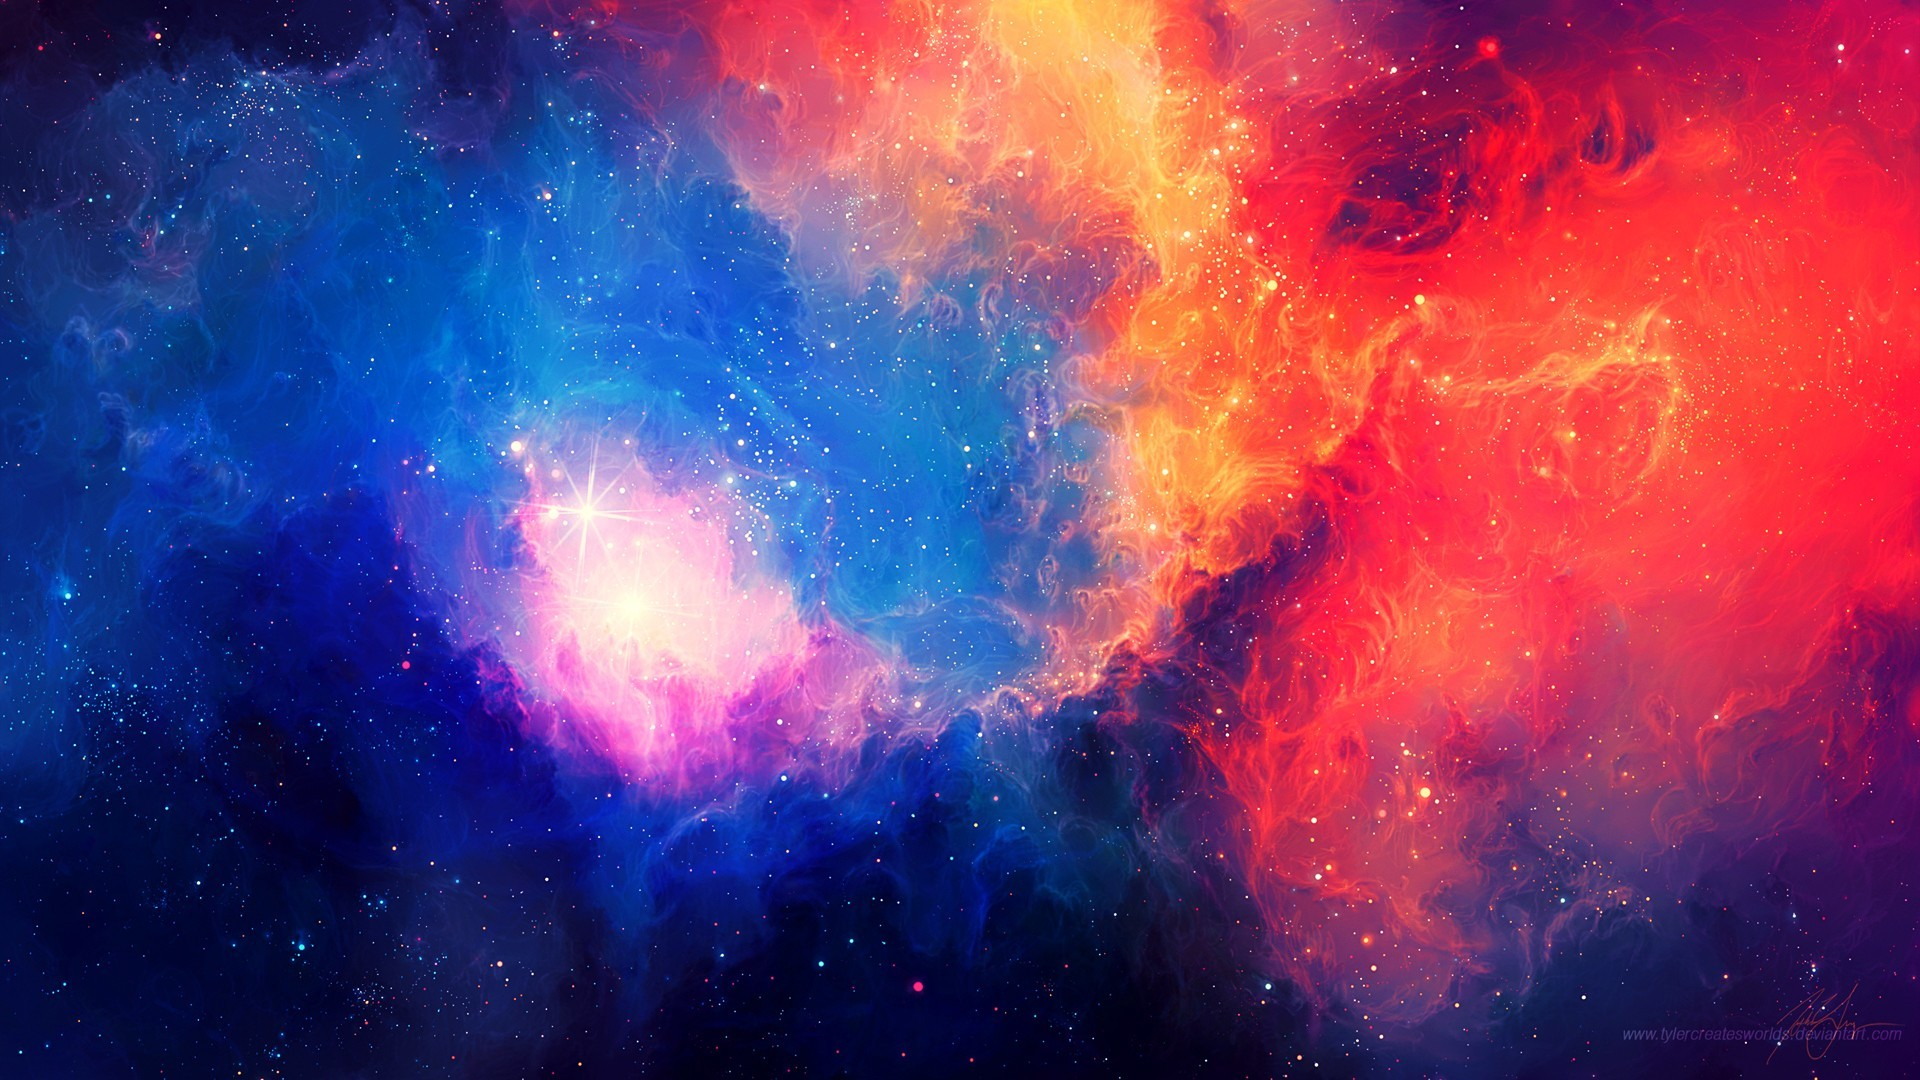 Colorful Galaxy Wallpaper High Resolution